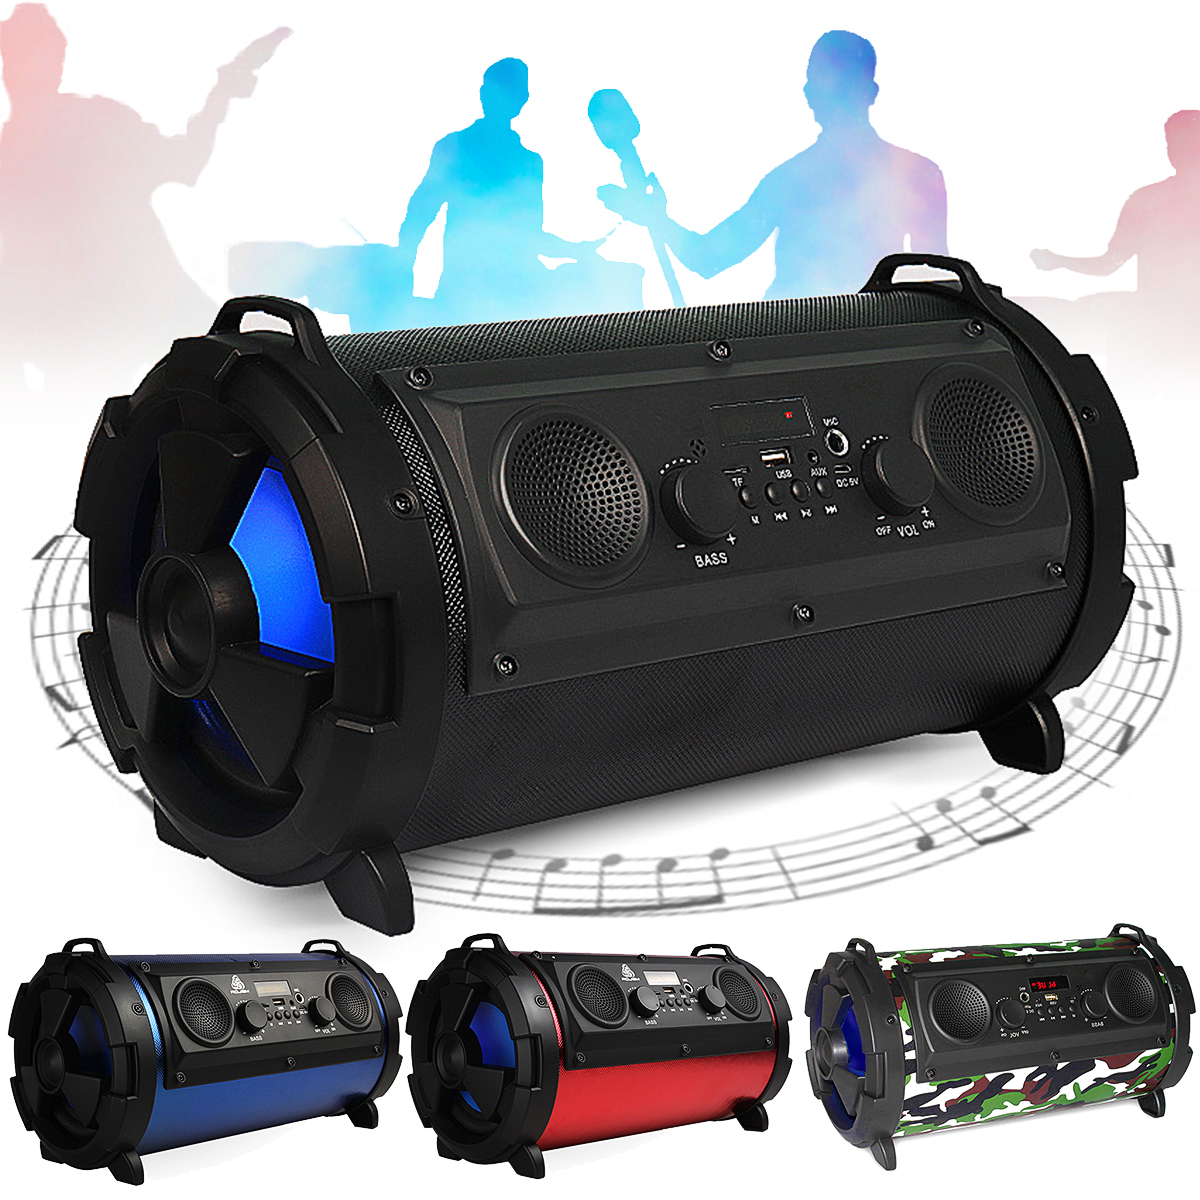 Outdoor Portable Wireless Bluetooth Speaker Subwoofer With Mic Super Bass Woofer HIFI Stereo Loundspeaker for Computer Phones стоимость